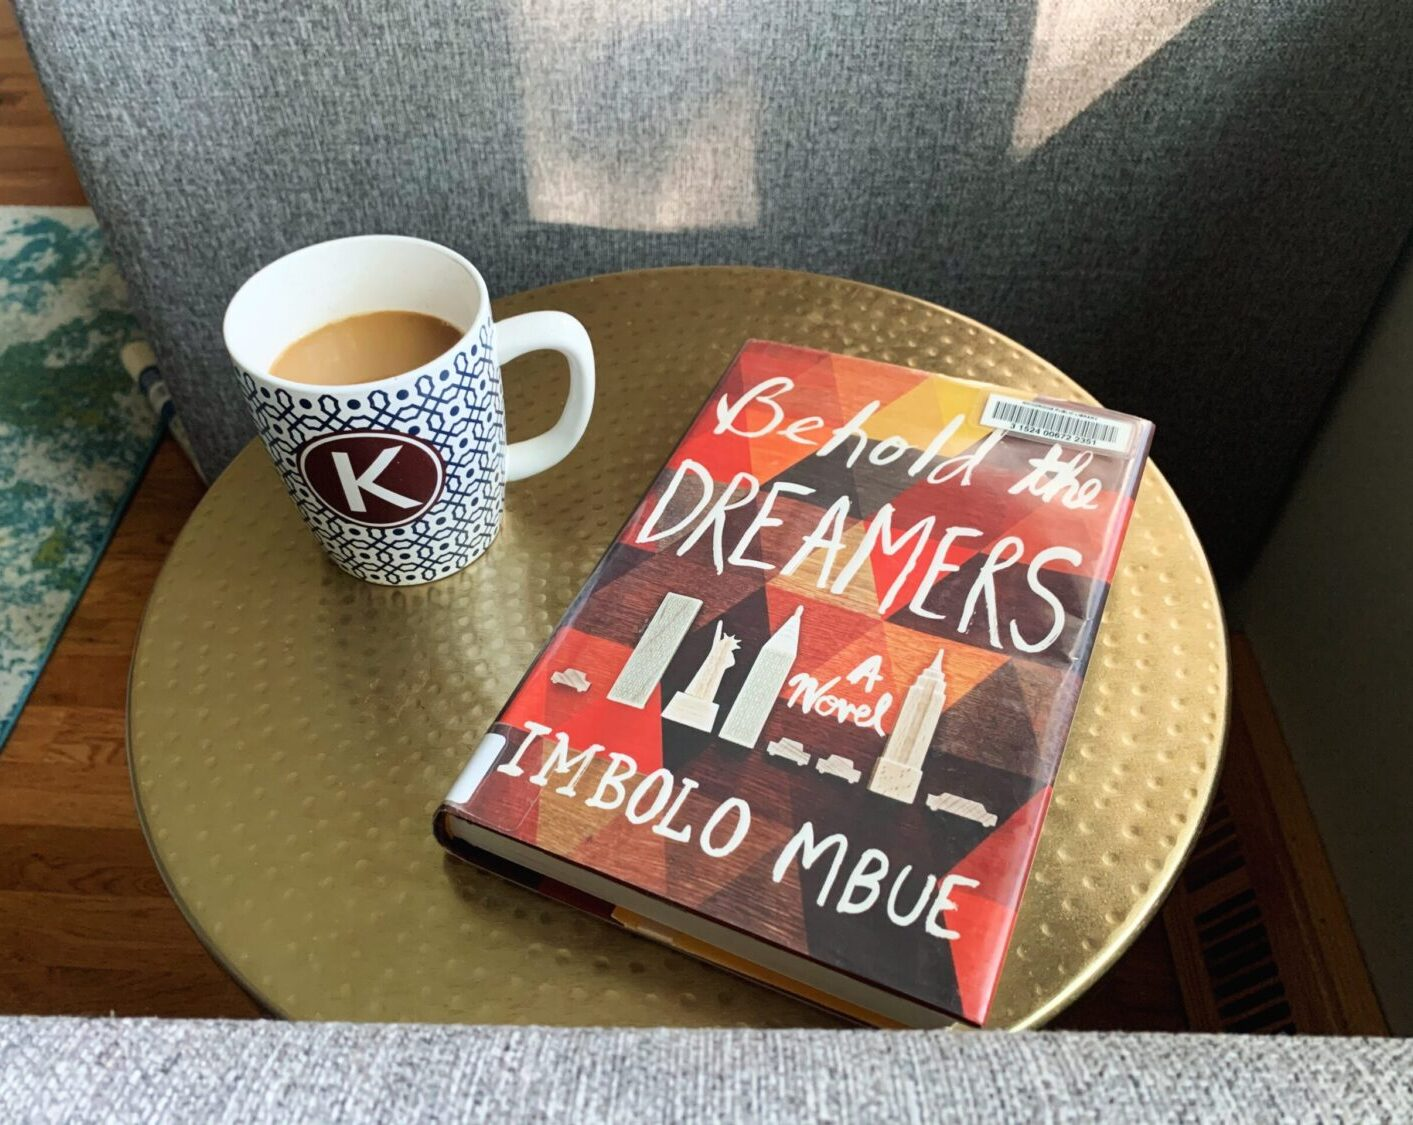 Coffee cup and Behold the Dreamers book in the sunshine. Part of my Sunday routine for success.